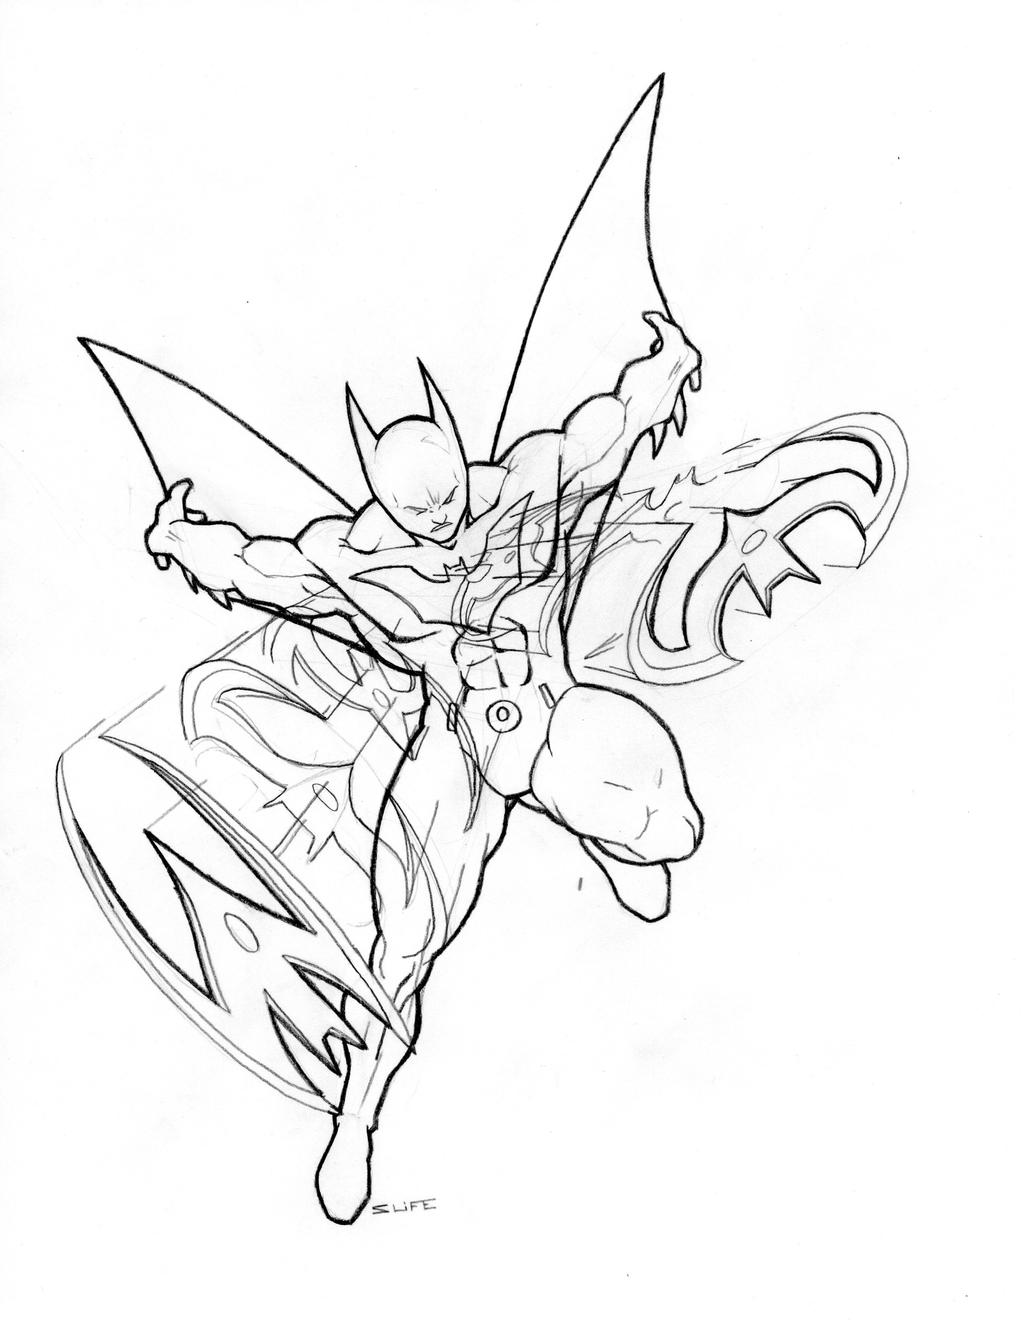 Free batman coloring pages online - Interesting With Batman Coloring Pages Online Free